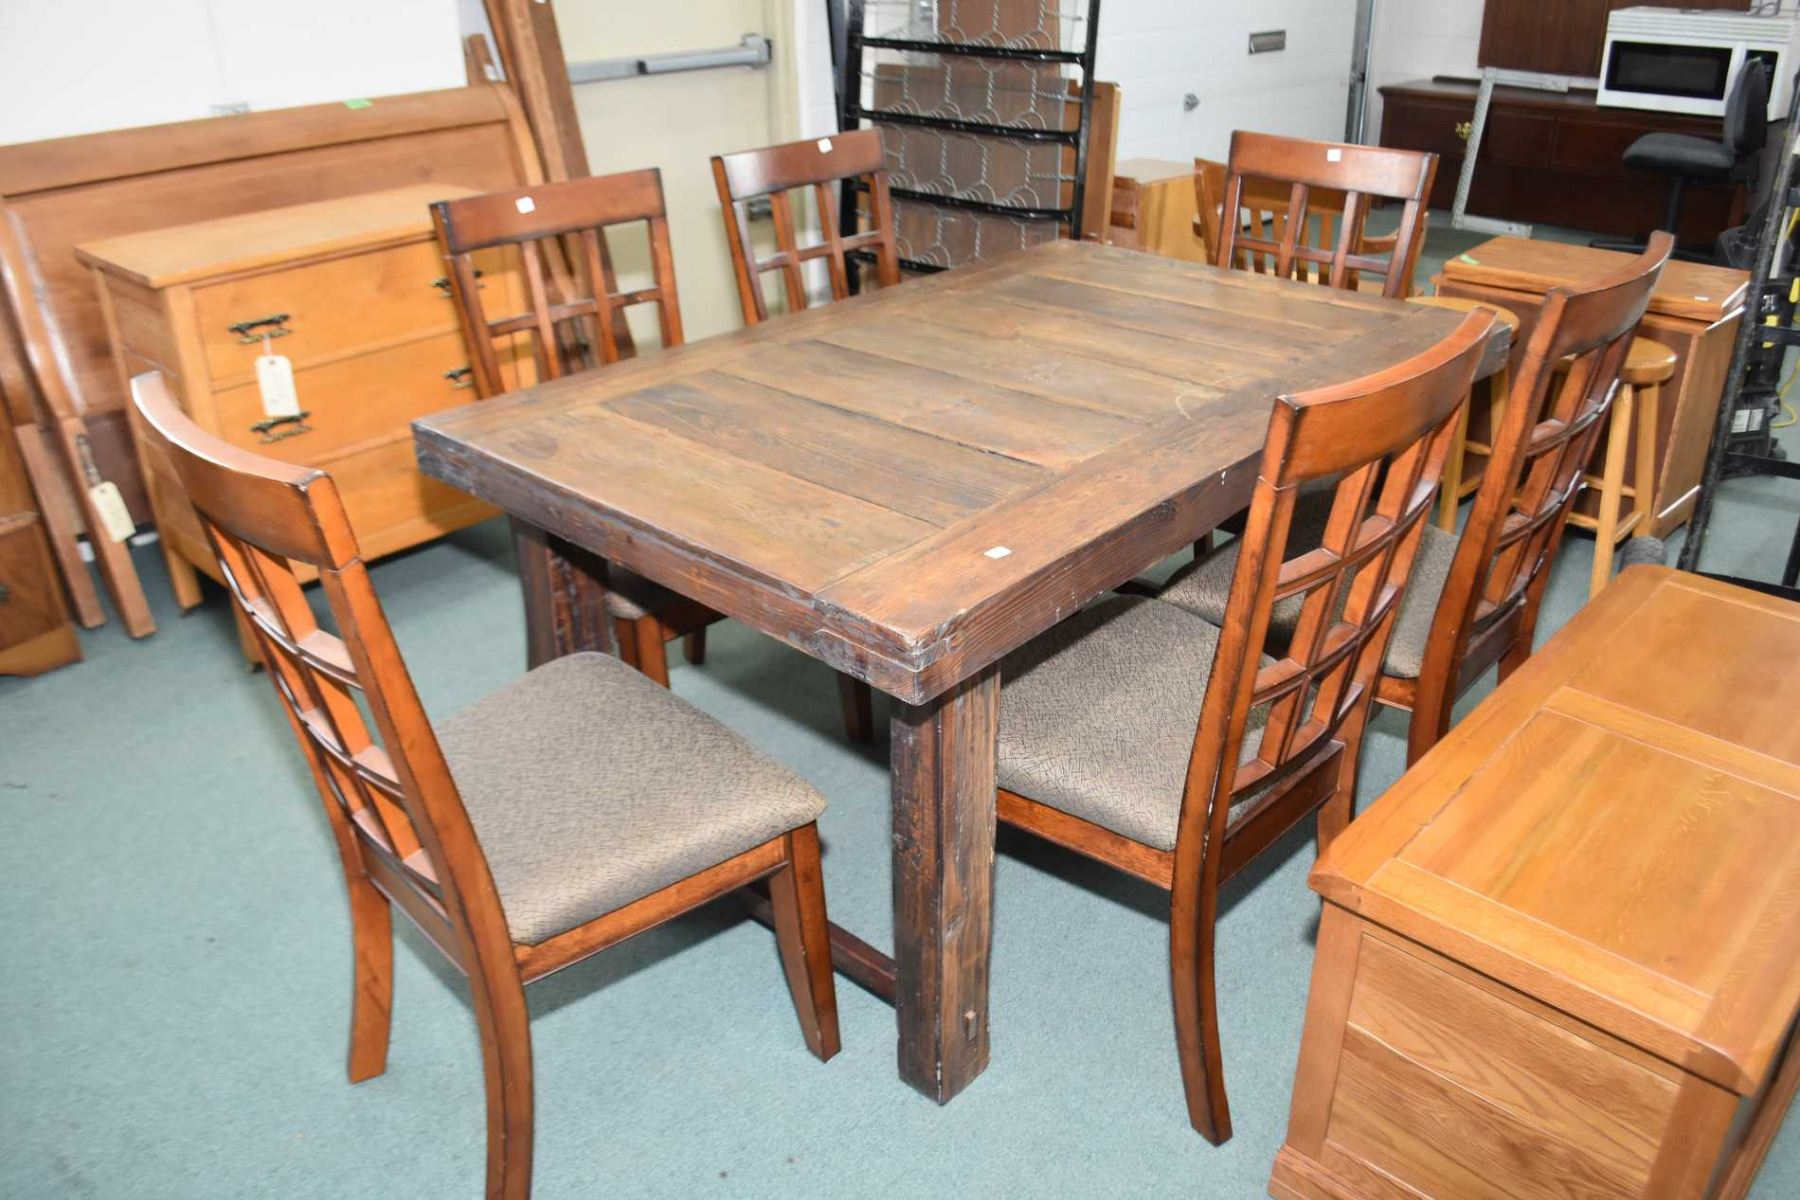 Image 1 handcrafted rustic style dining table assembled without the use of nails or screws